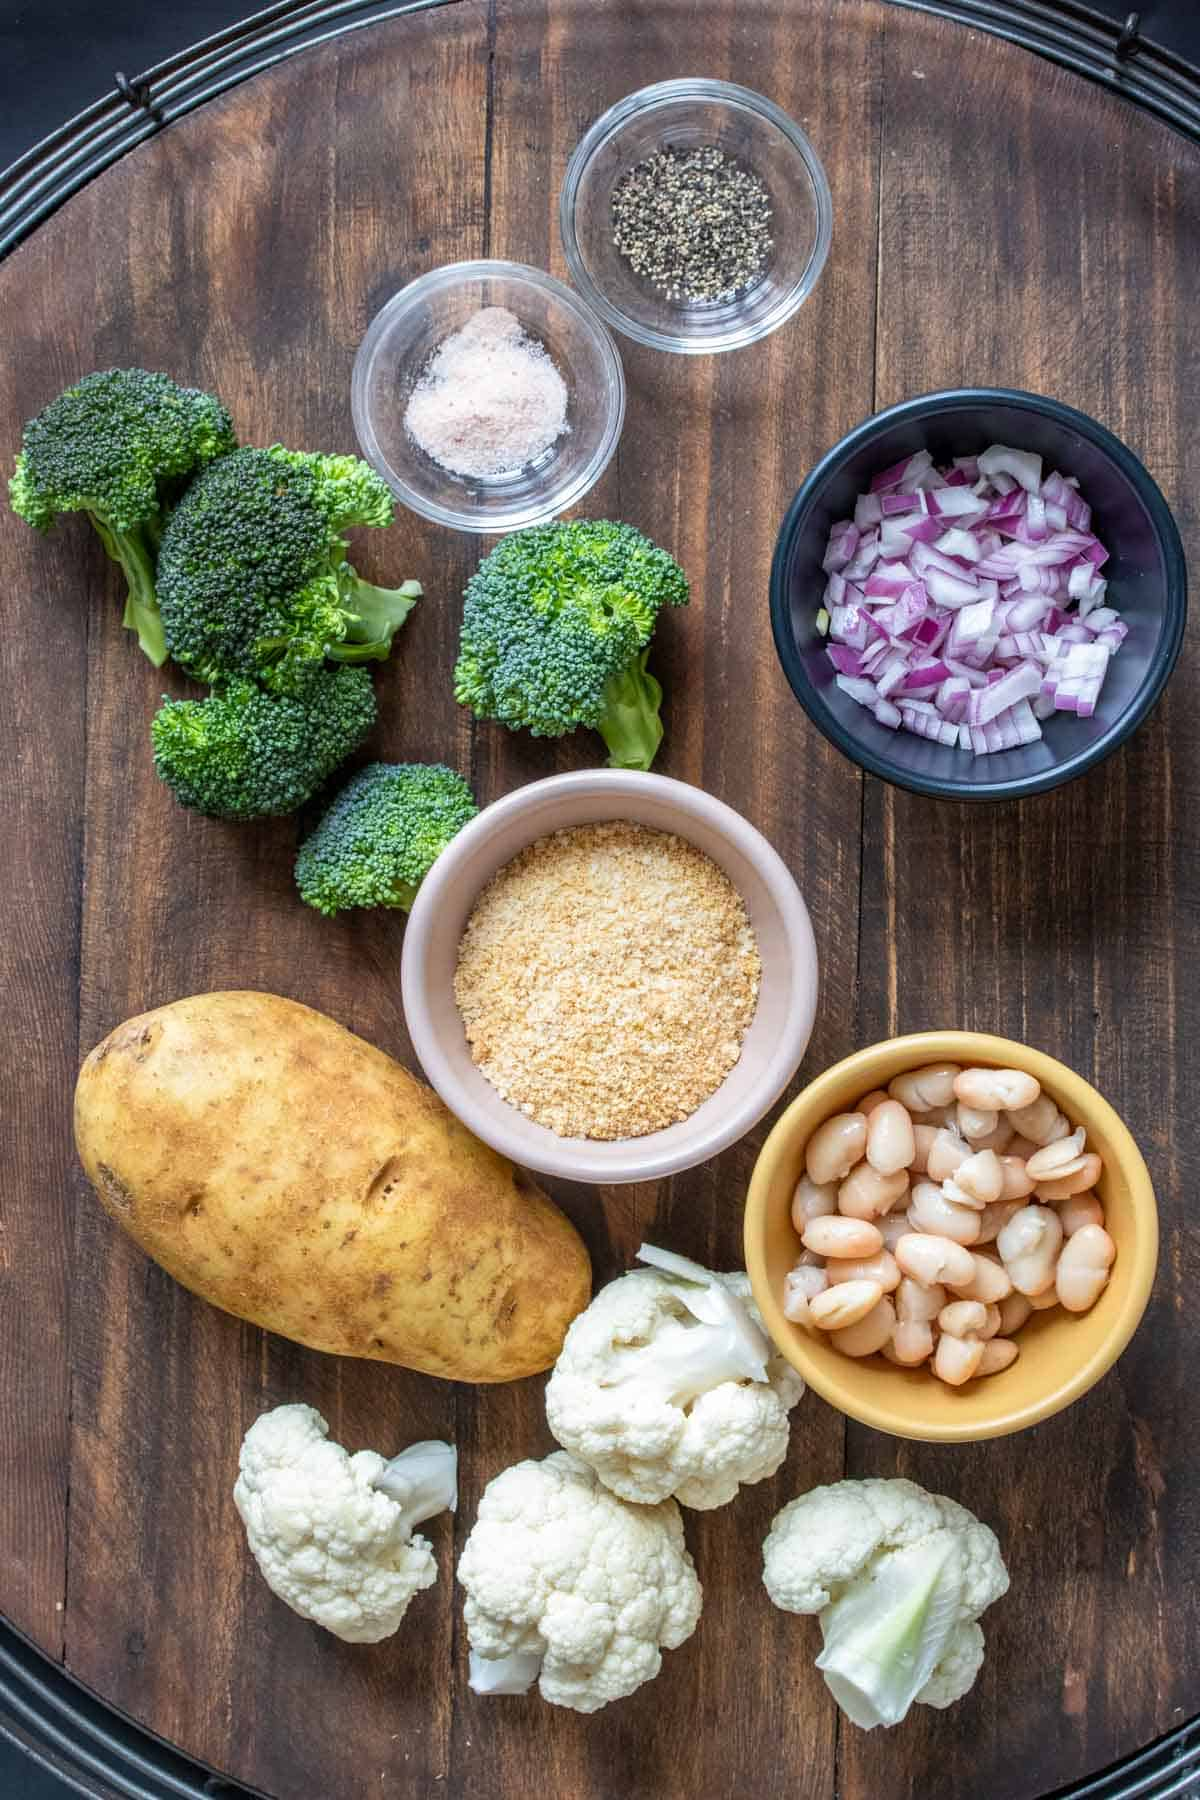 Baked broccoli and cauliflower stems and tots with creamy dip